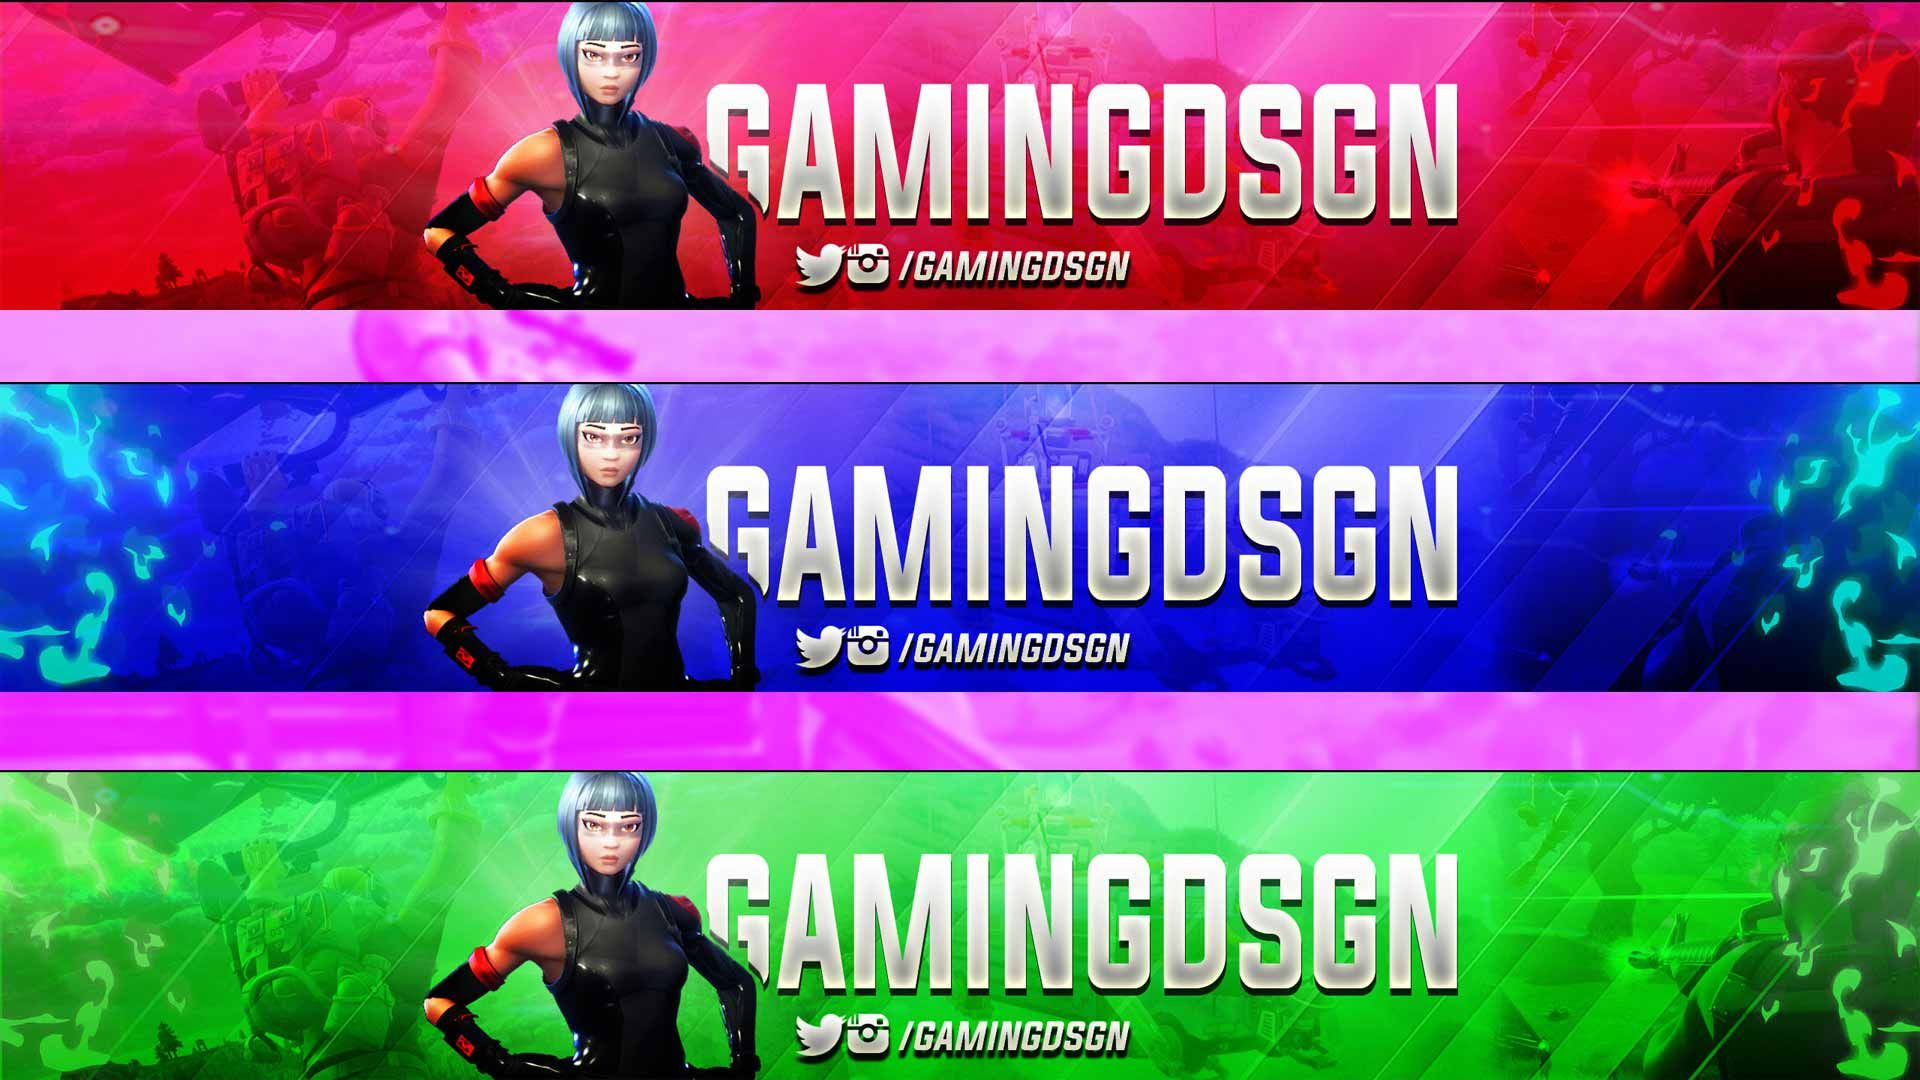 This Simplistic Fortnite Banner Is Great For Youtube Channel And